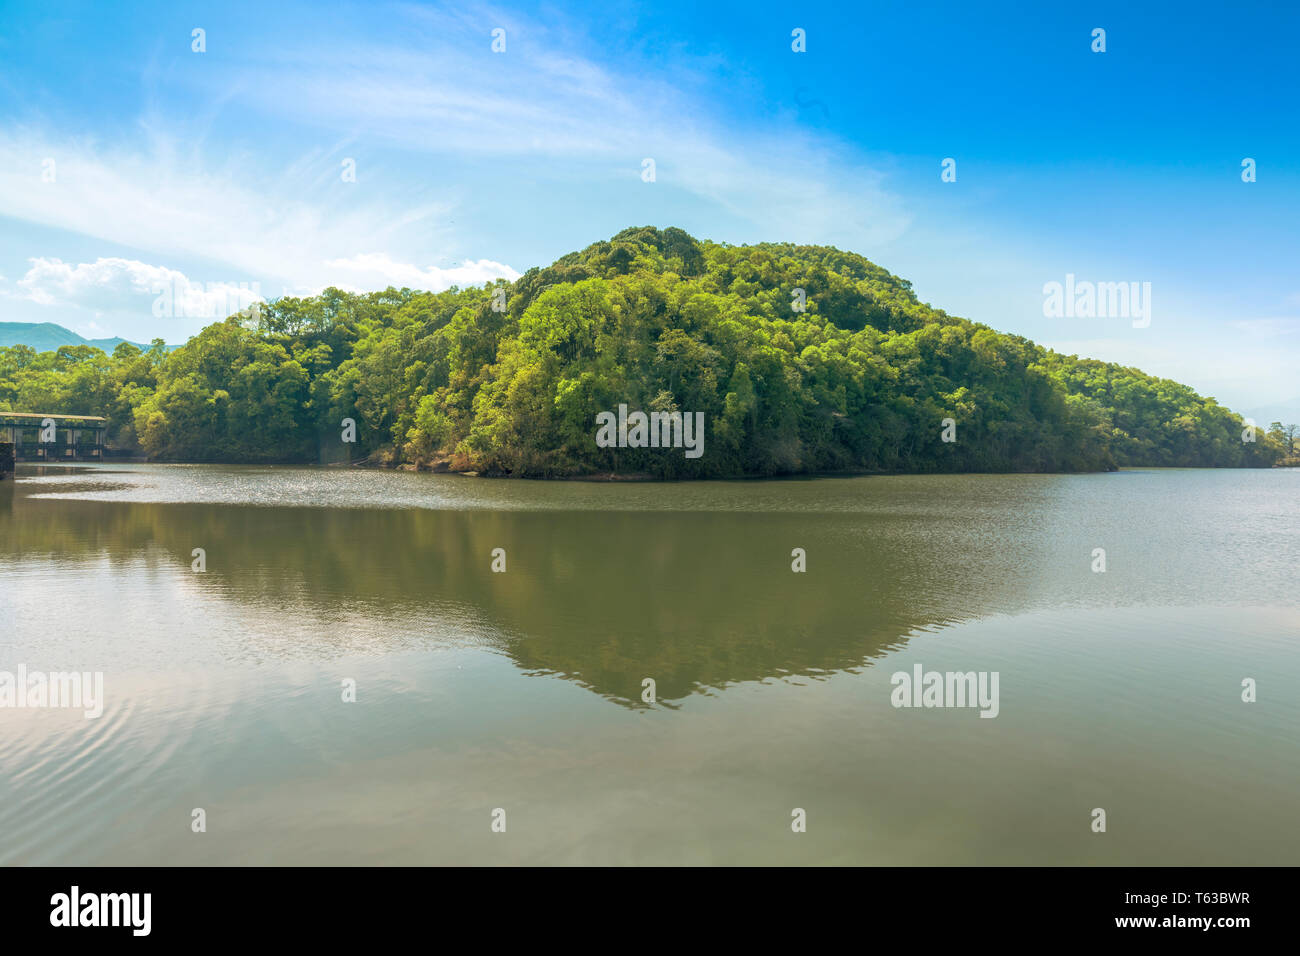 Phewa Lake reflecting trees in water,Pokhara Nepal - Stock Image